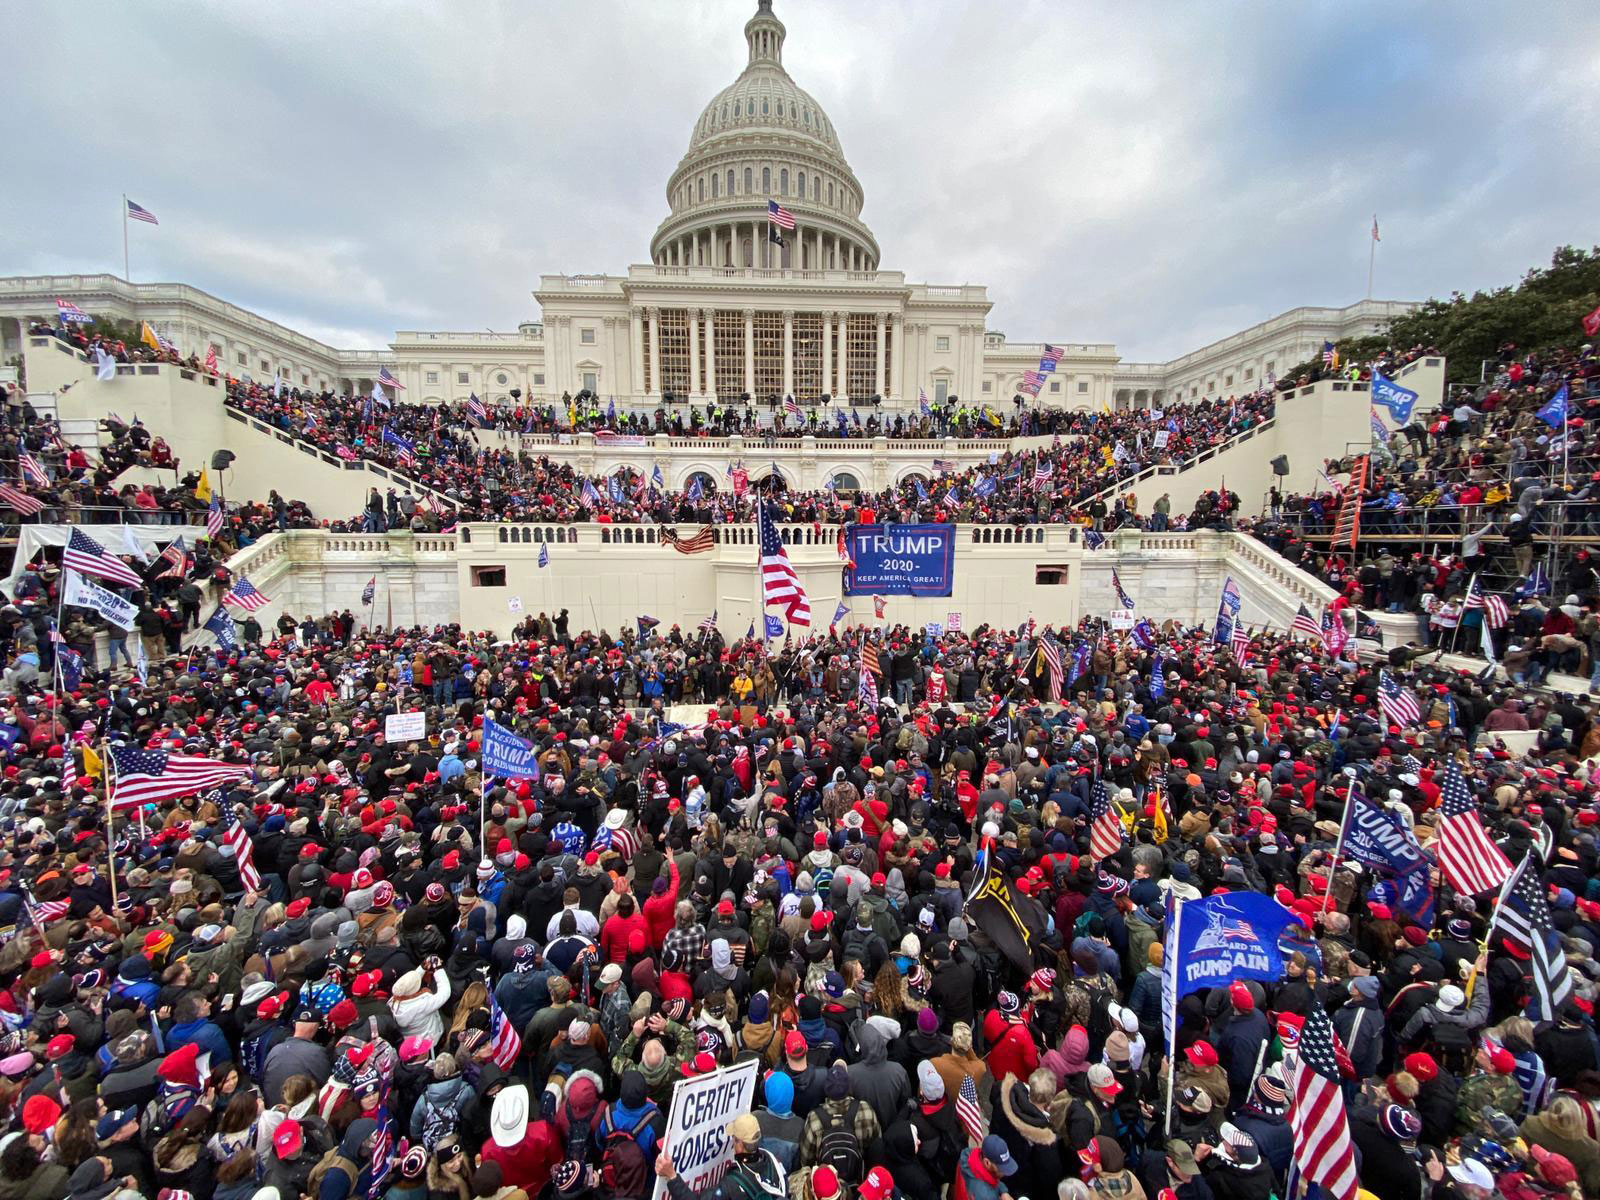 Rioters gather outside the Capitol building in Washington on January 6.